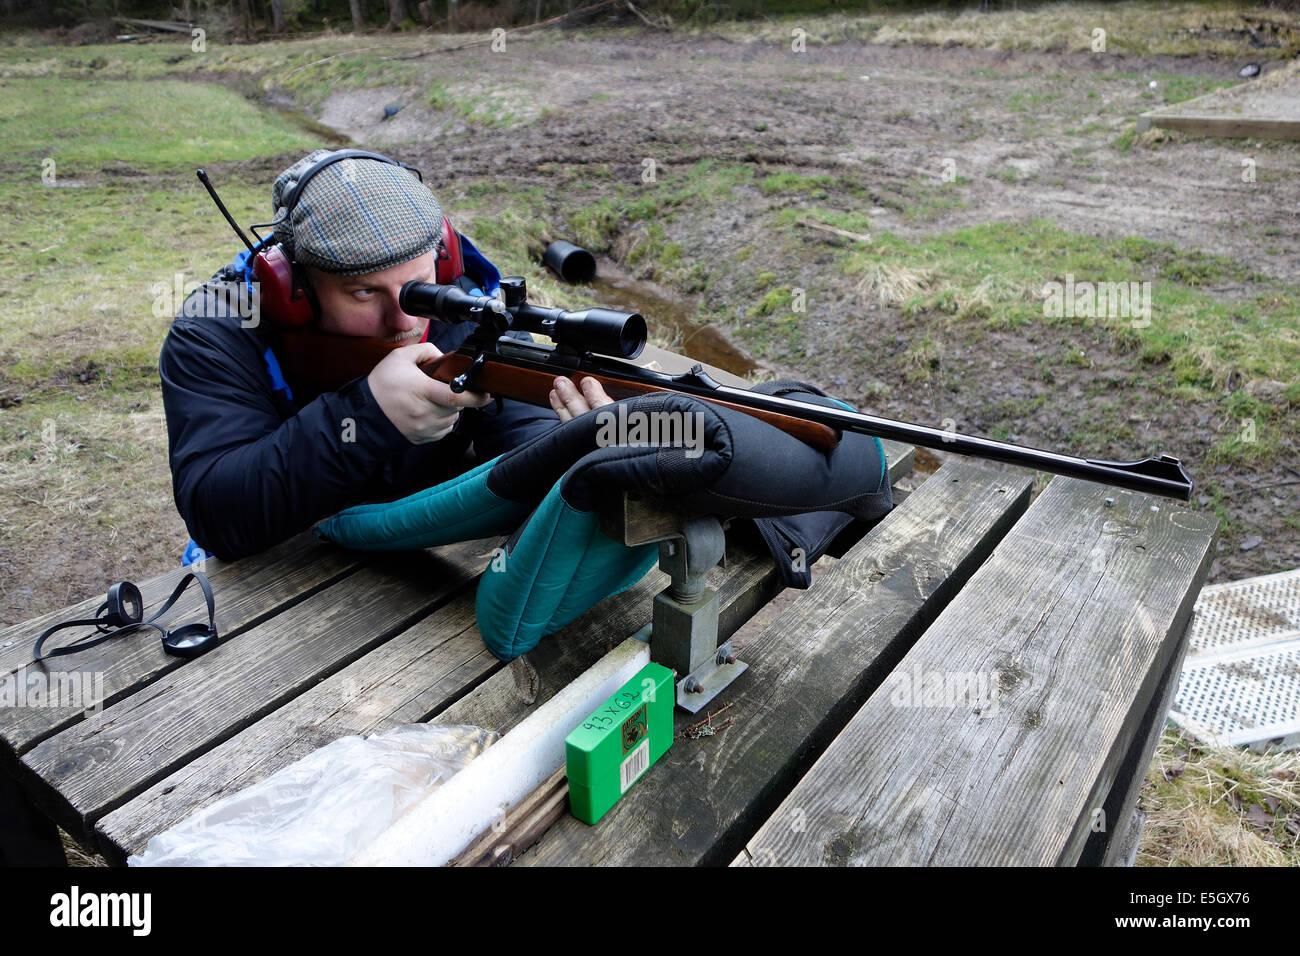 Hunter with hunting rifle equipped with a scope is about to shoot a training round. - Stock Image